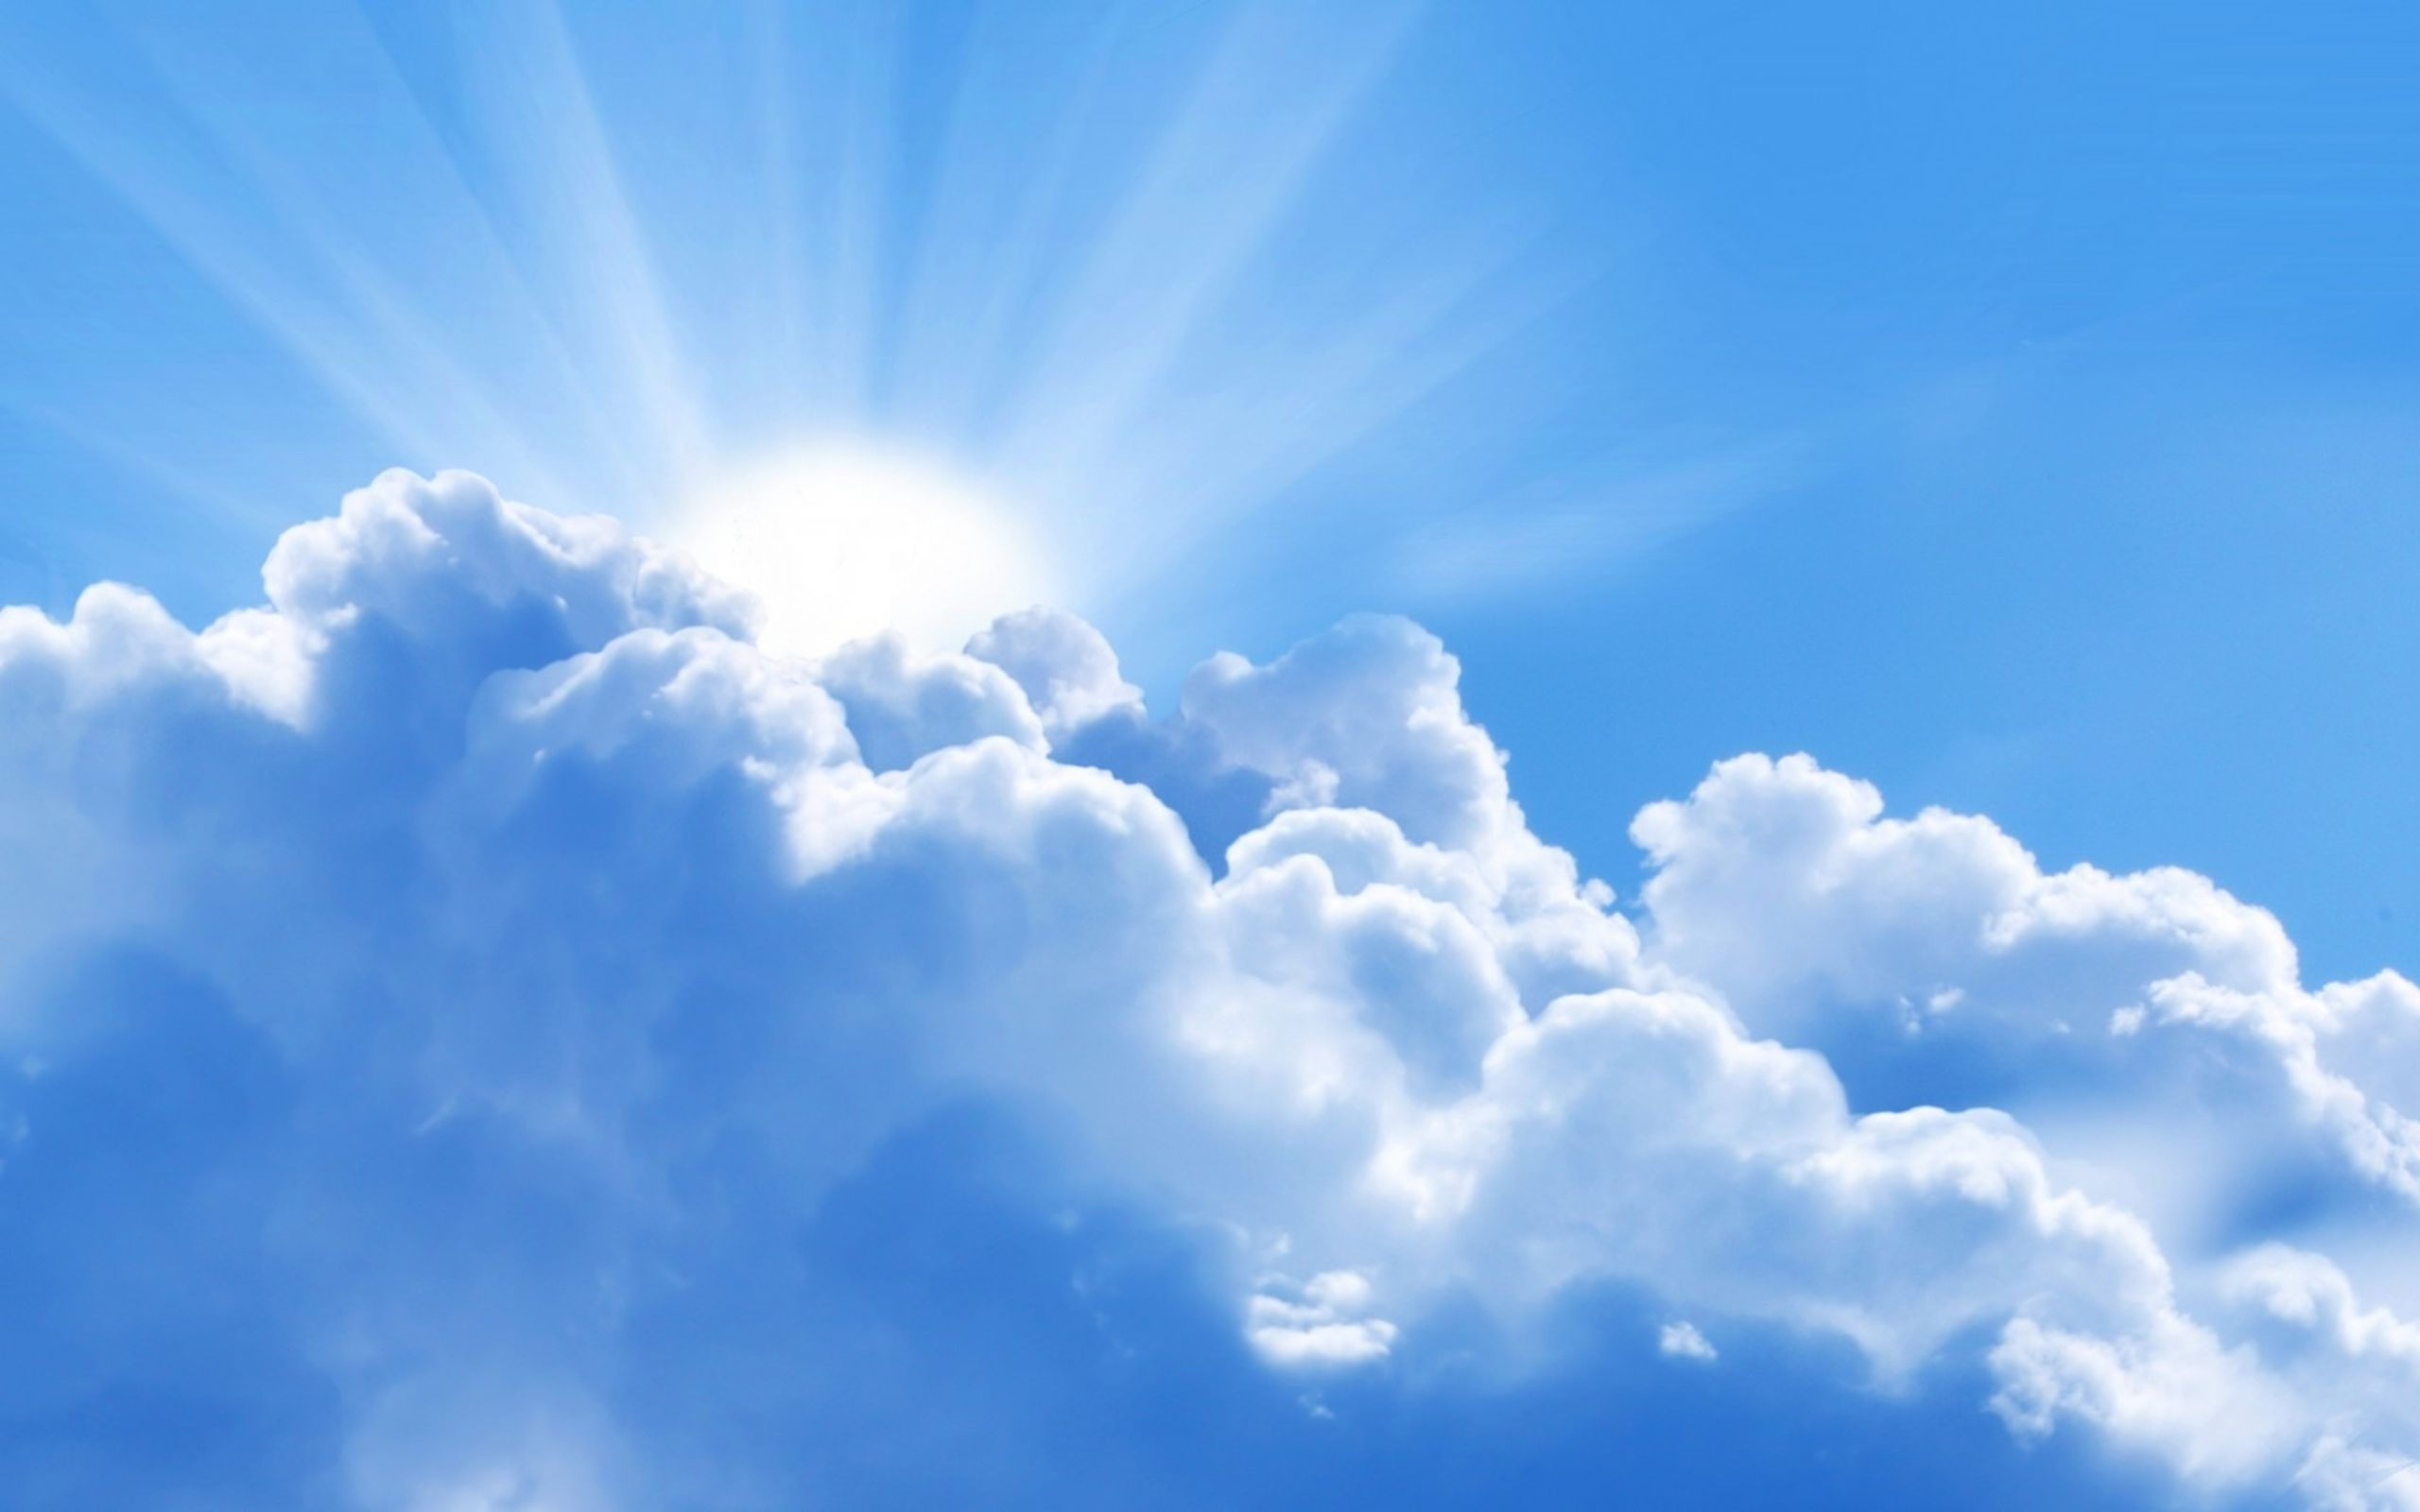 Clouds clipart sky background Cartoon Sky Background Image ClipArt